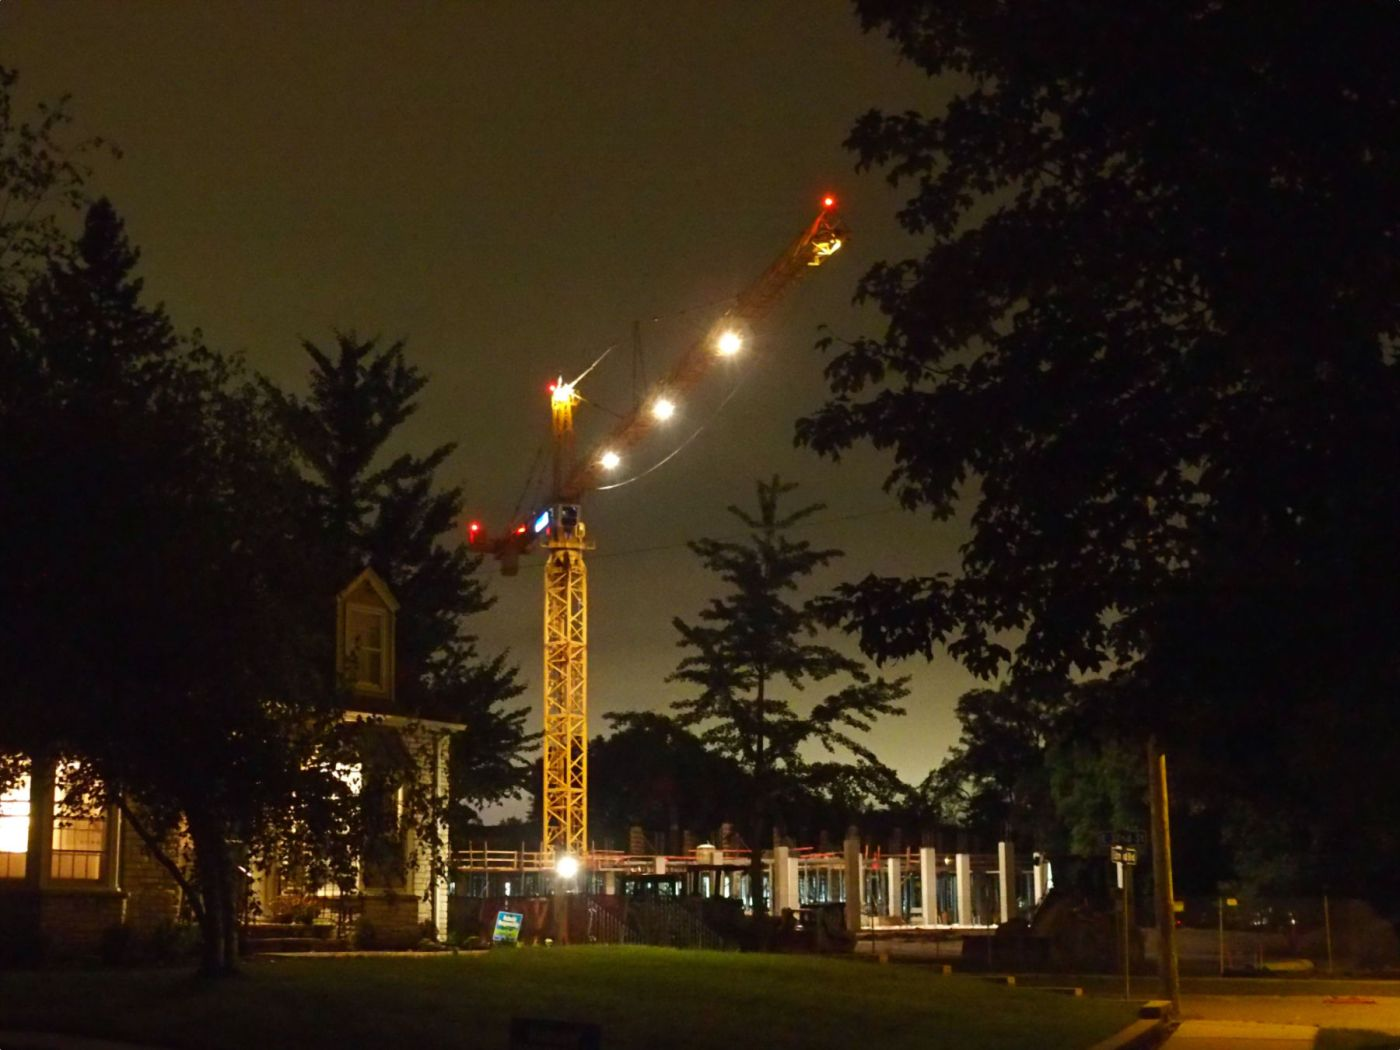 Crane over construction site at night